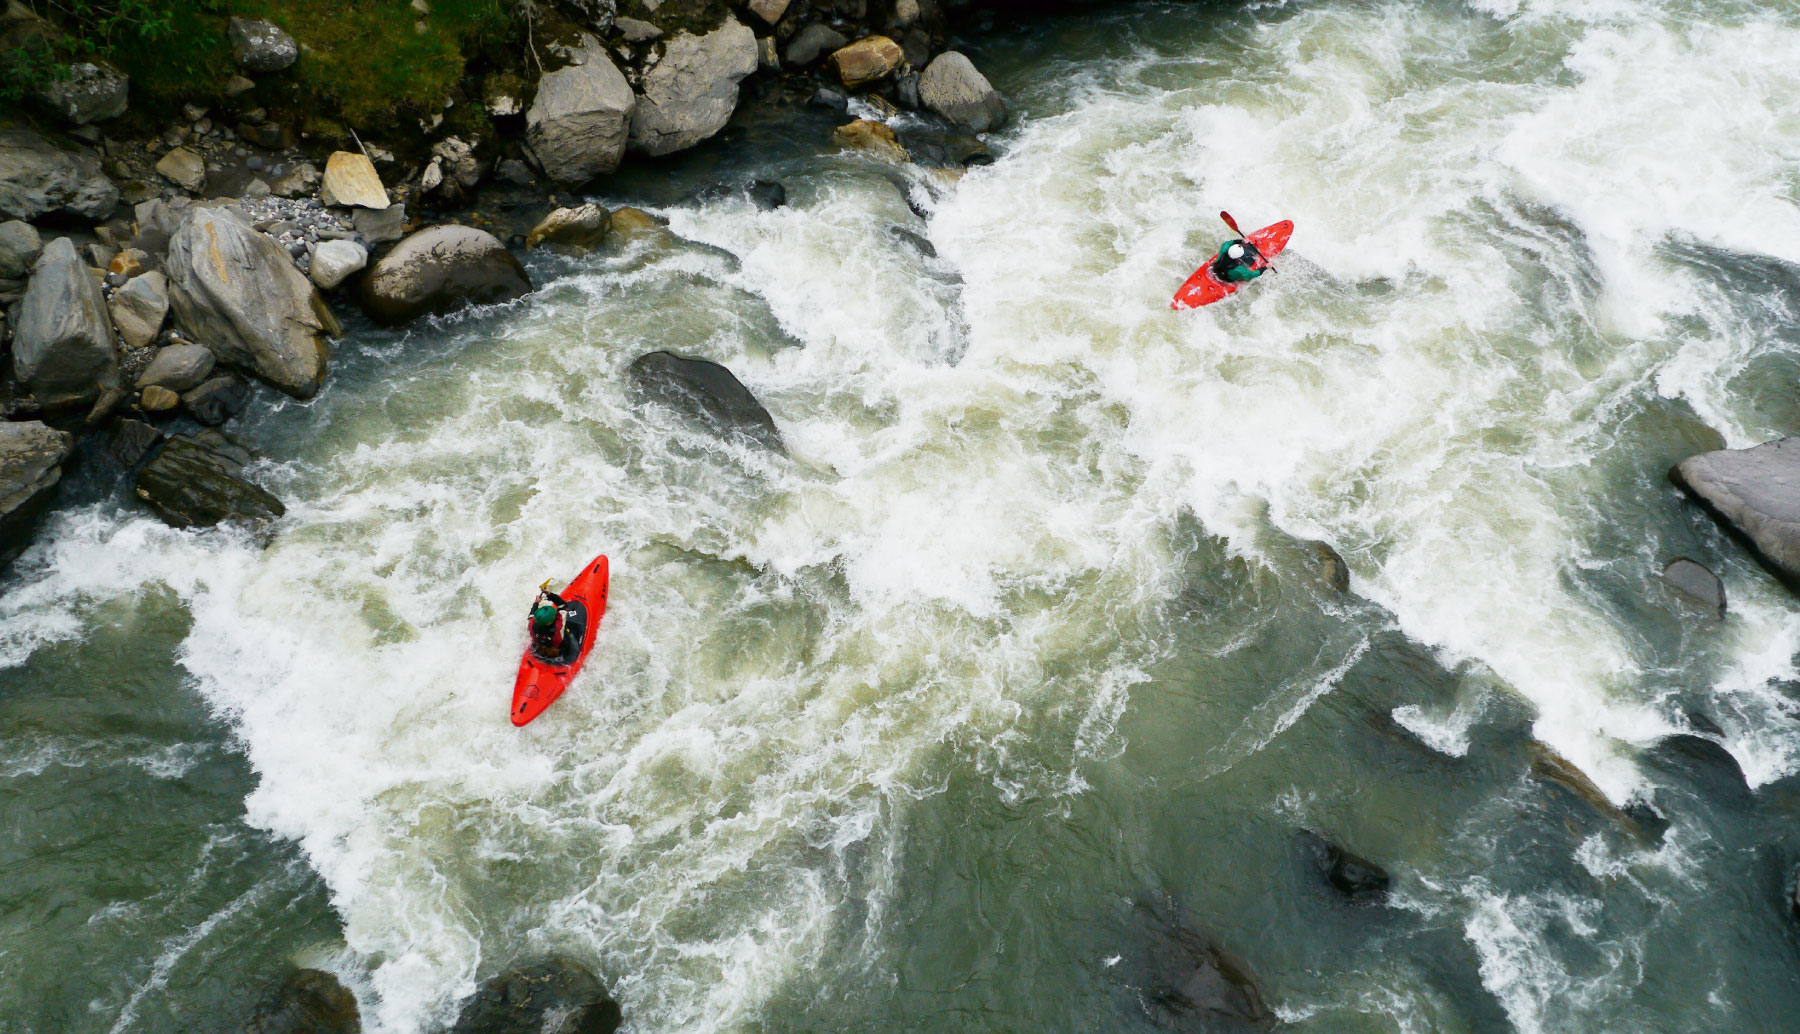 Whitewater kayak Ecuador | Kayak Guided trip Ecuador